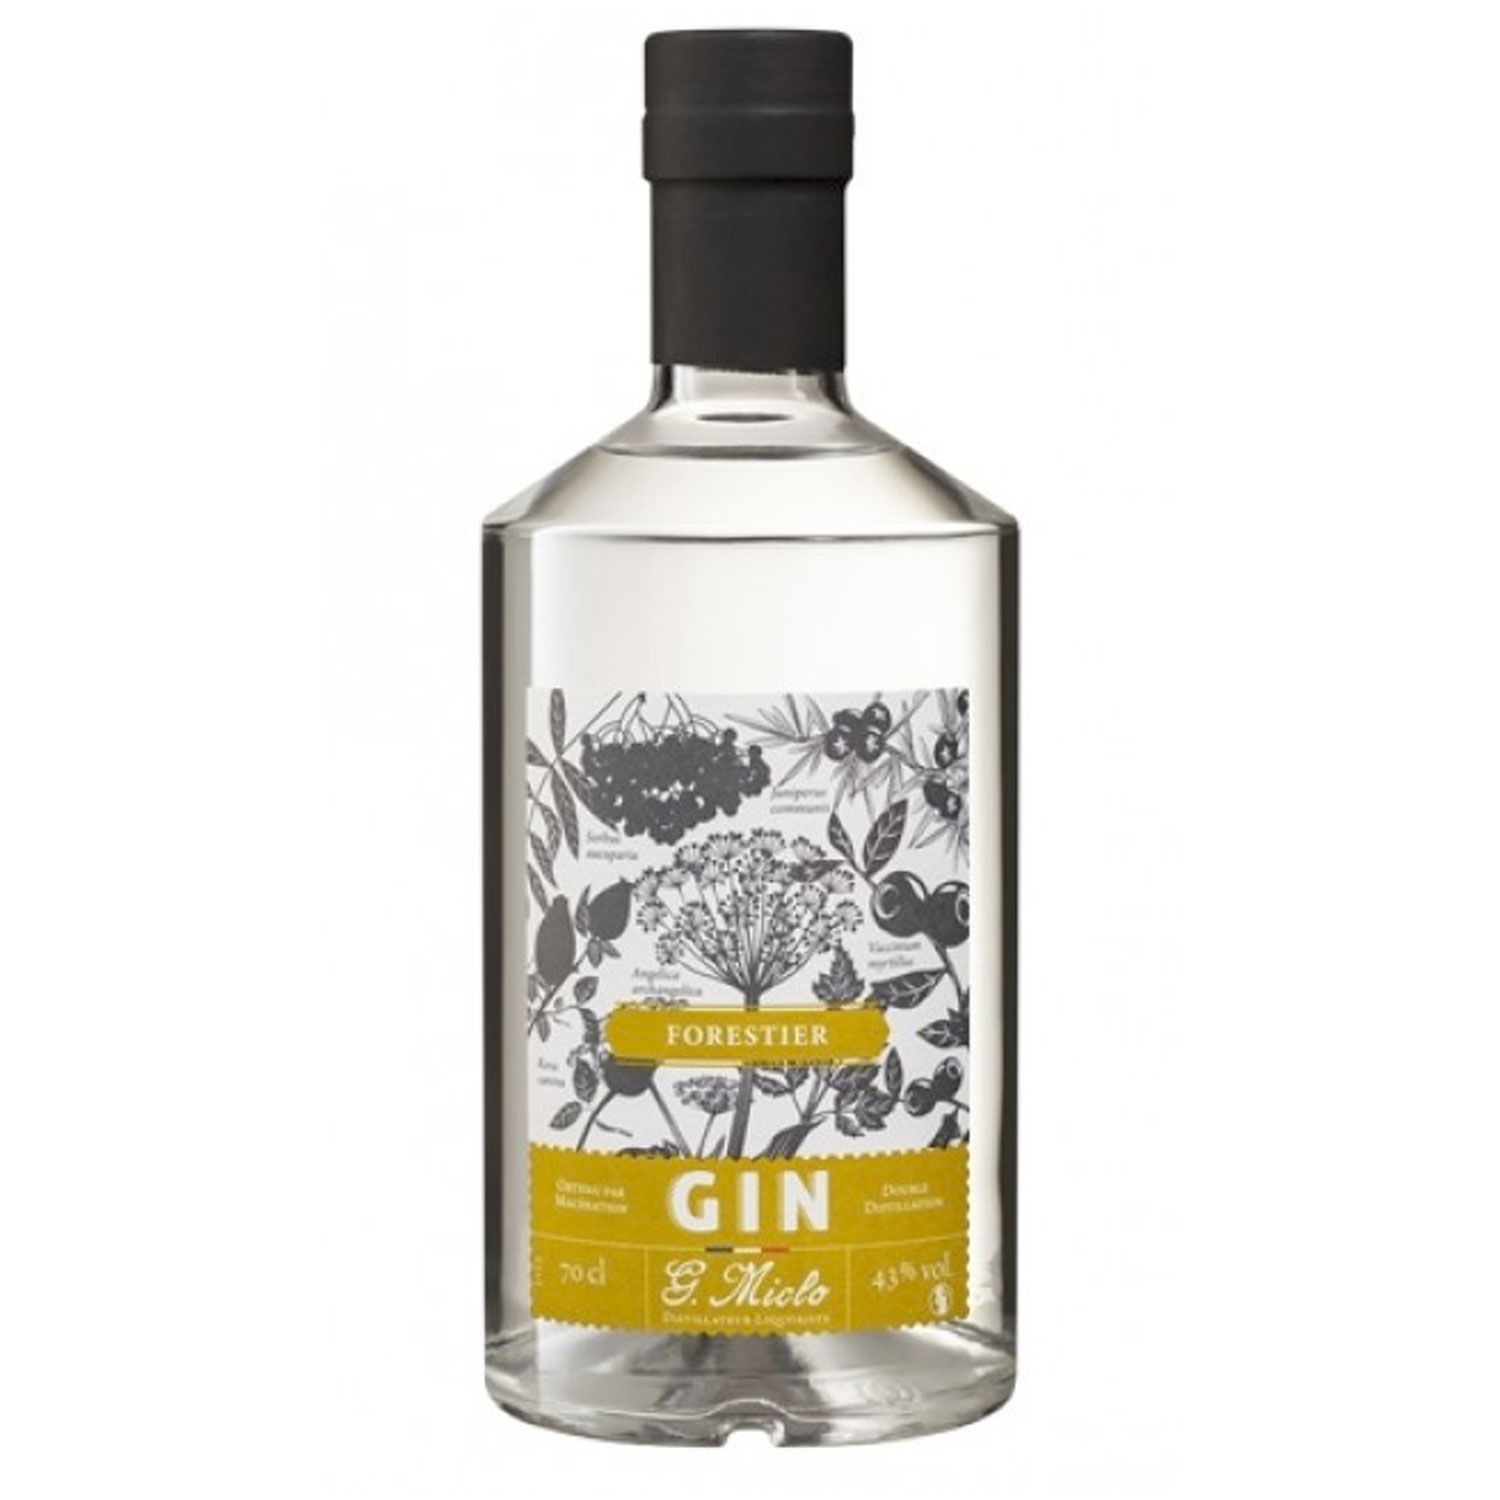 Gin - Miclo - Forestier - France - 43° - 70cl